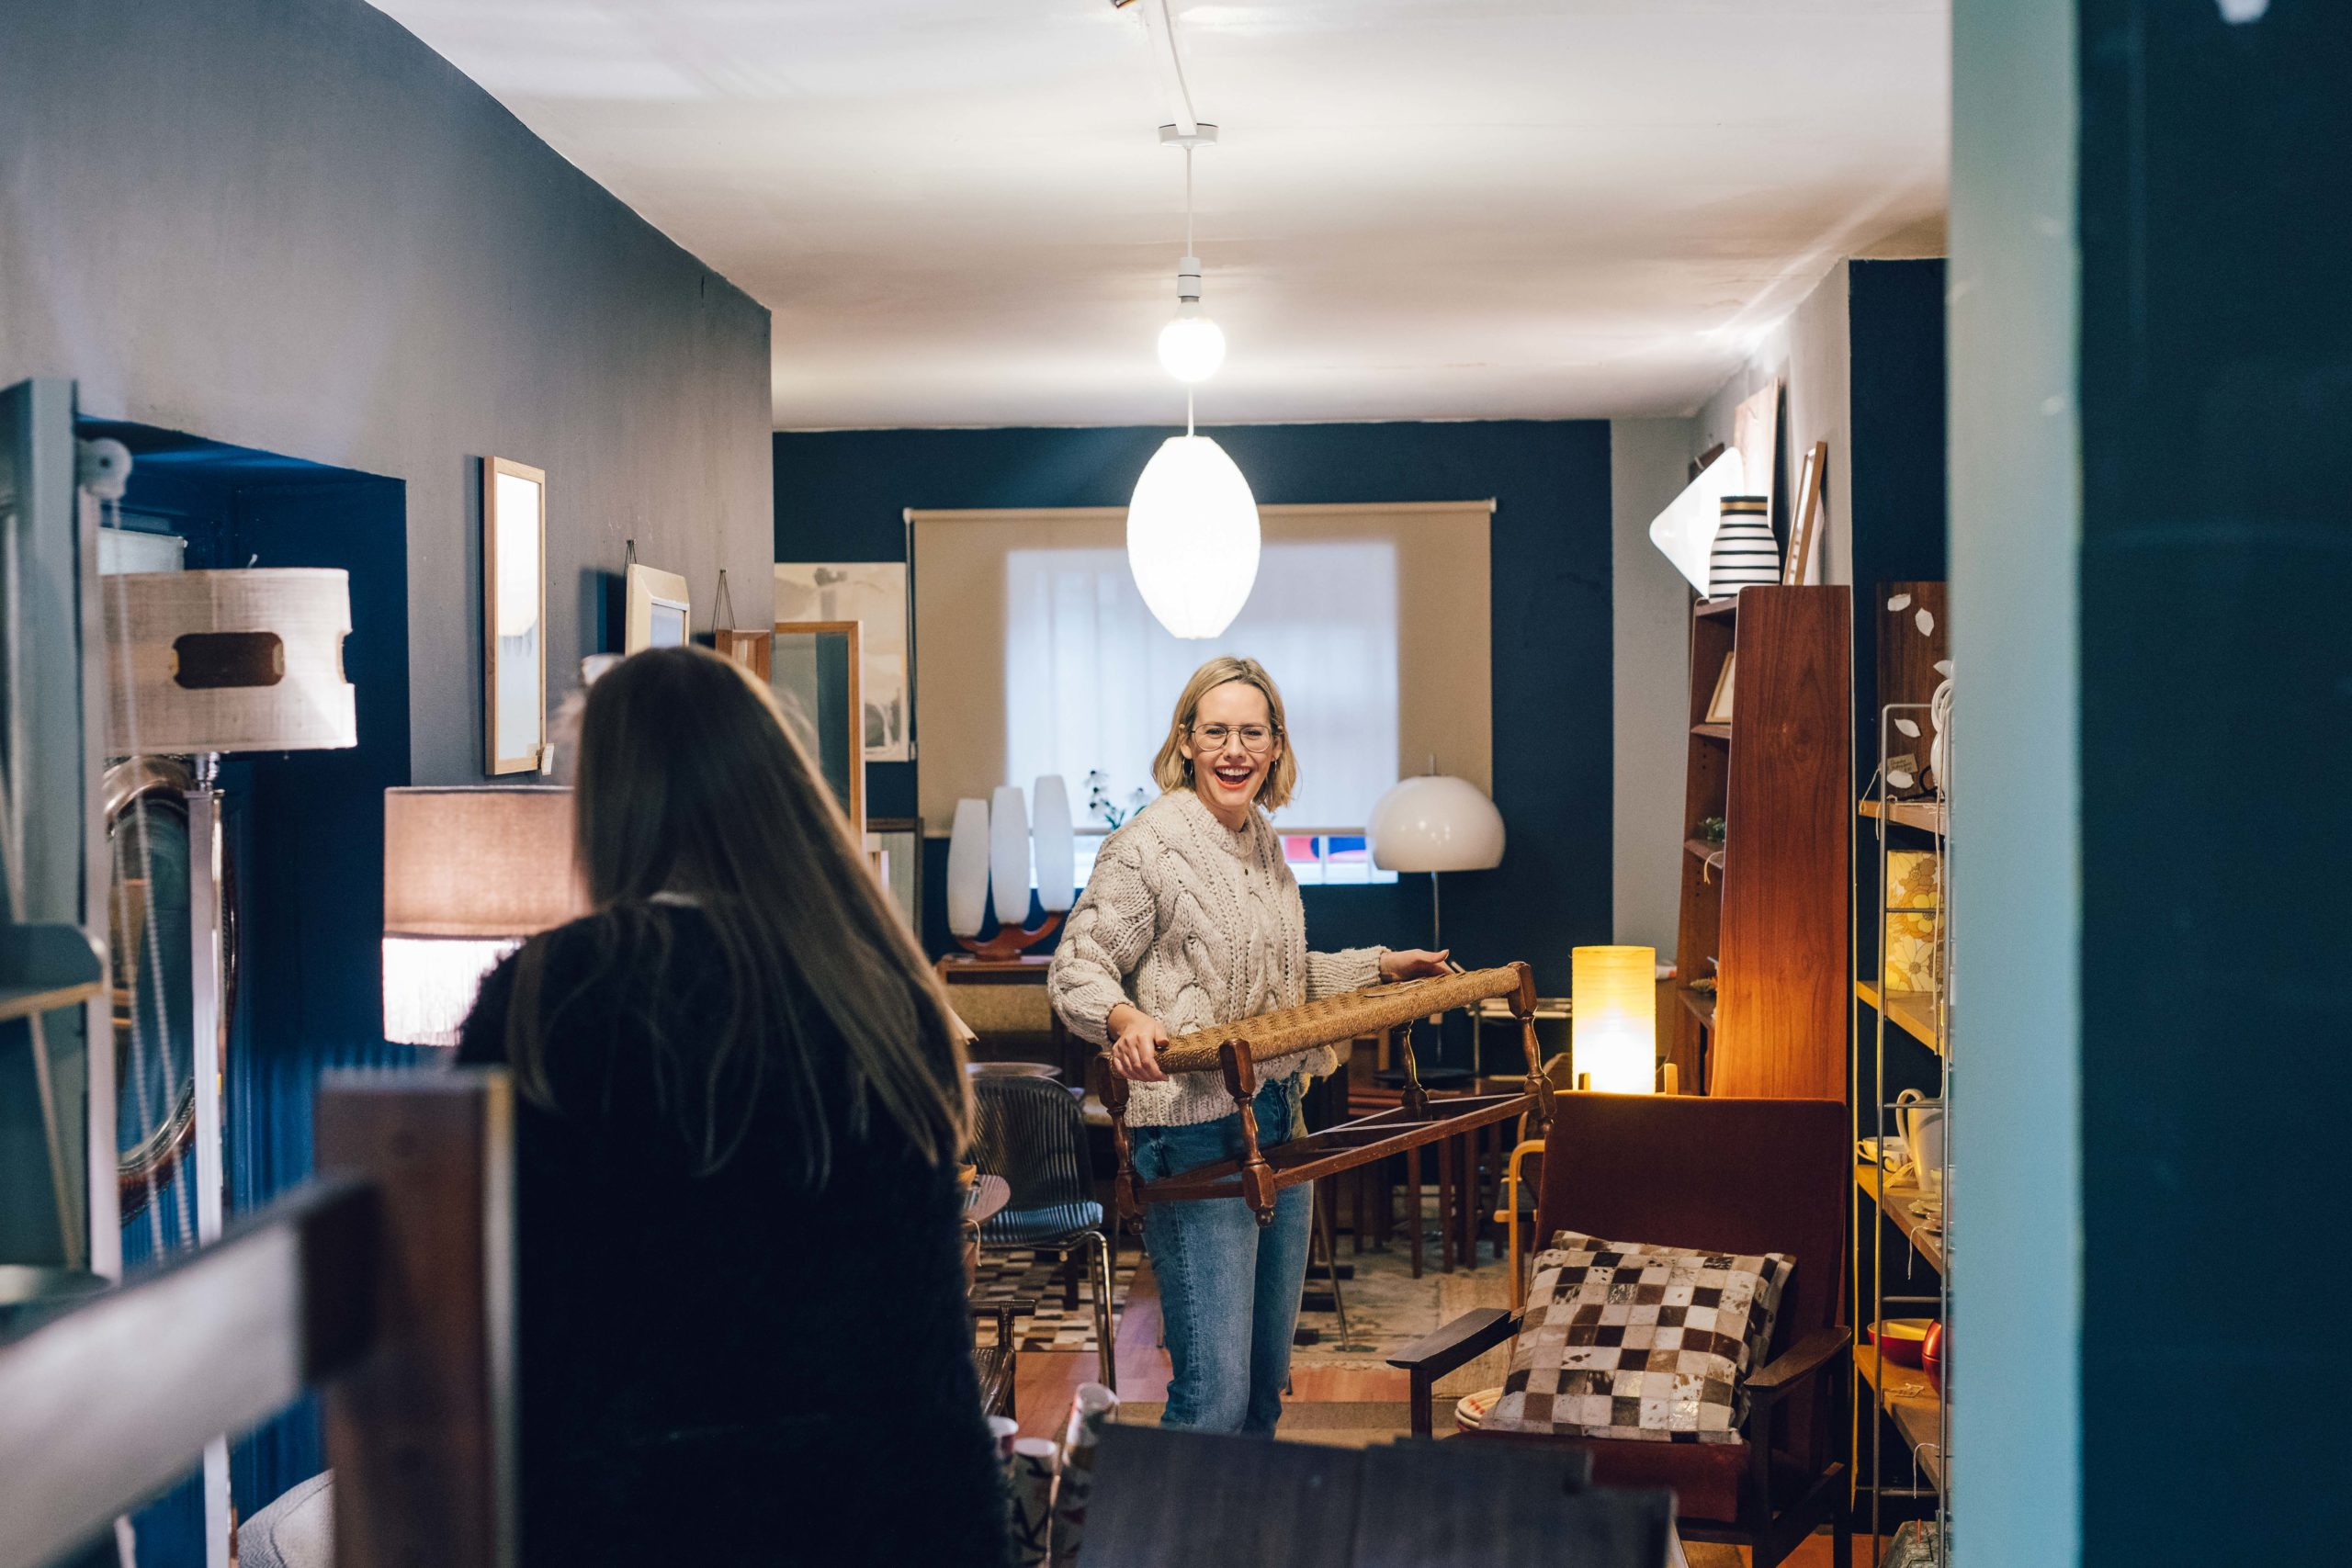 Women moving around furniture and laughing